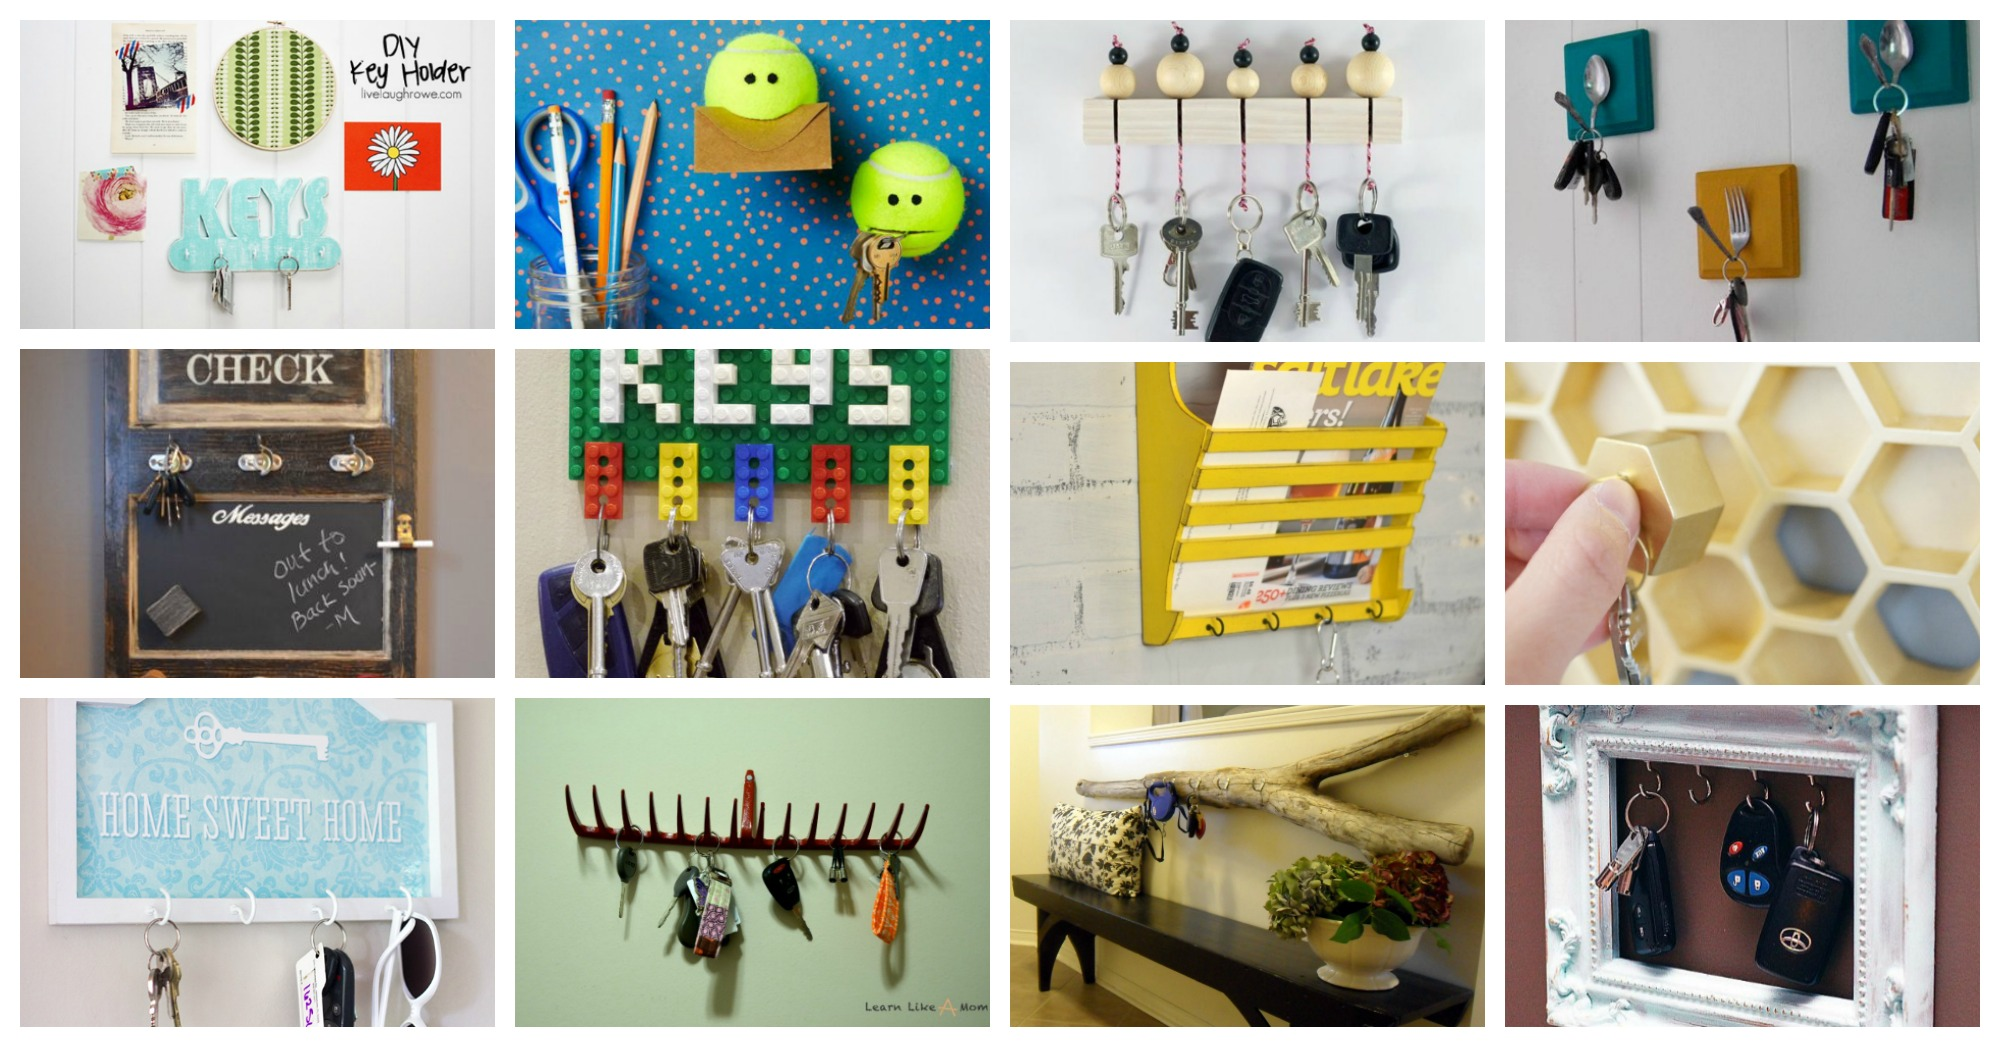 Stupendous DIY Key Holders That Will Help You Never Lose Your Keys Again